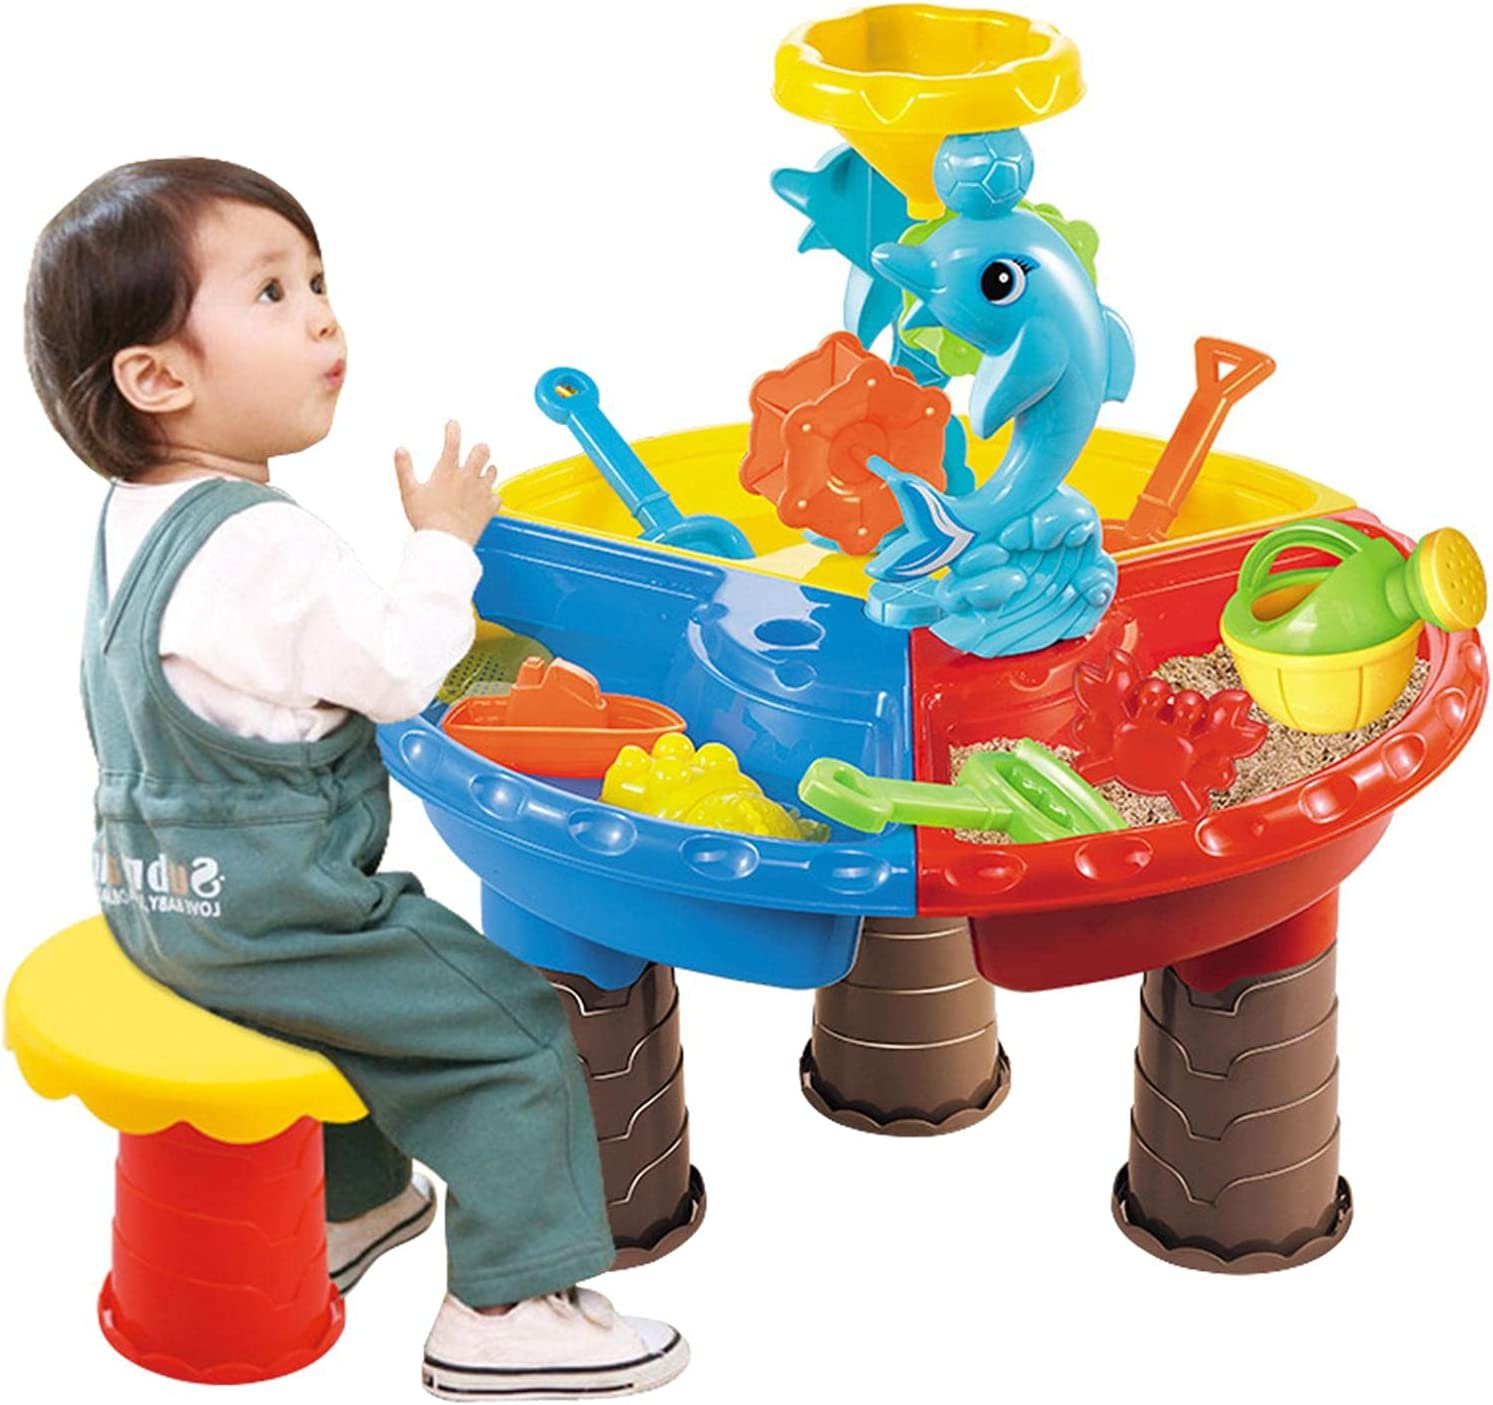 2021 spring and summer new Jacksonville Mall LOPADE Sand Water Table with Cover Sandbox Kids